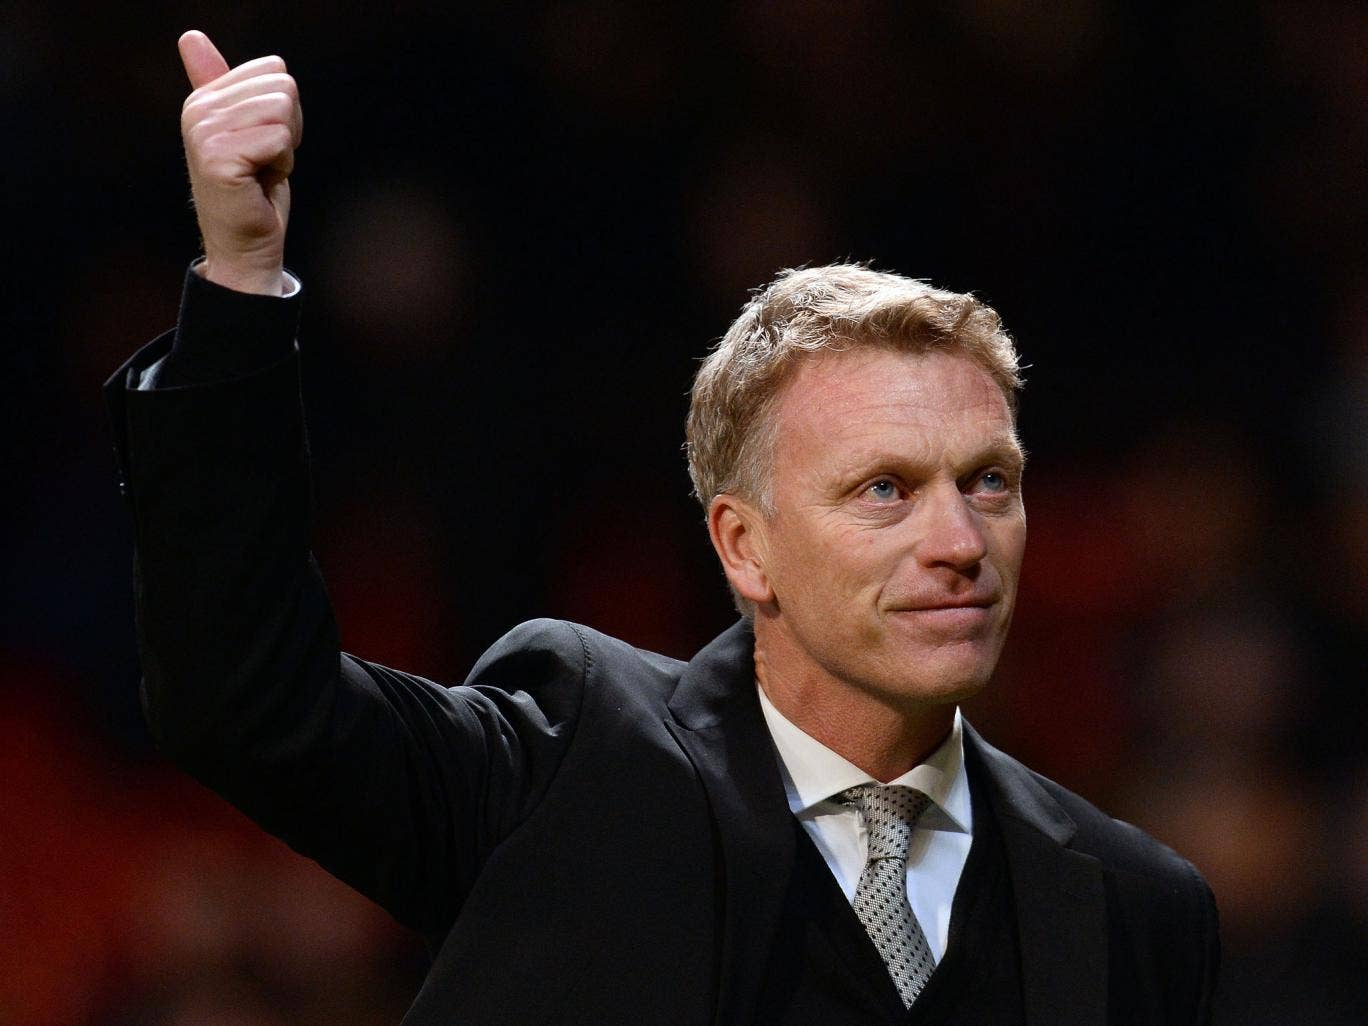 Manchester United manager David Moyes salutes the home fans after their Champions League victory over Shakhtar Donetsk